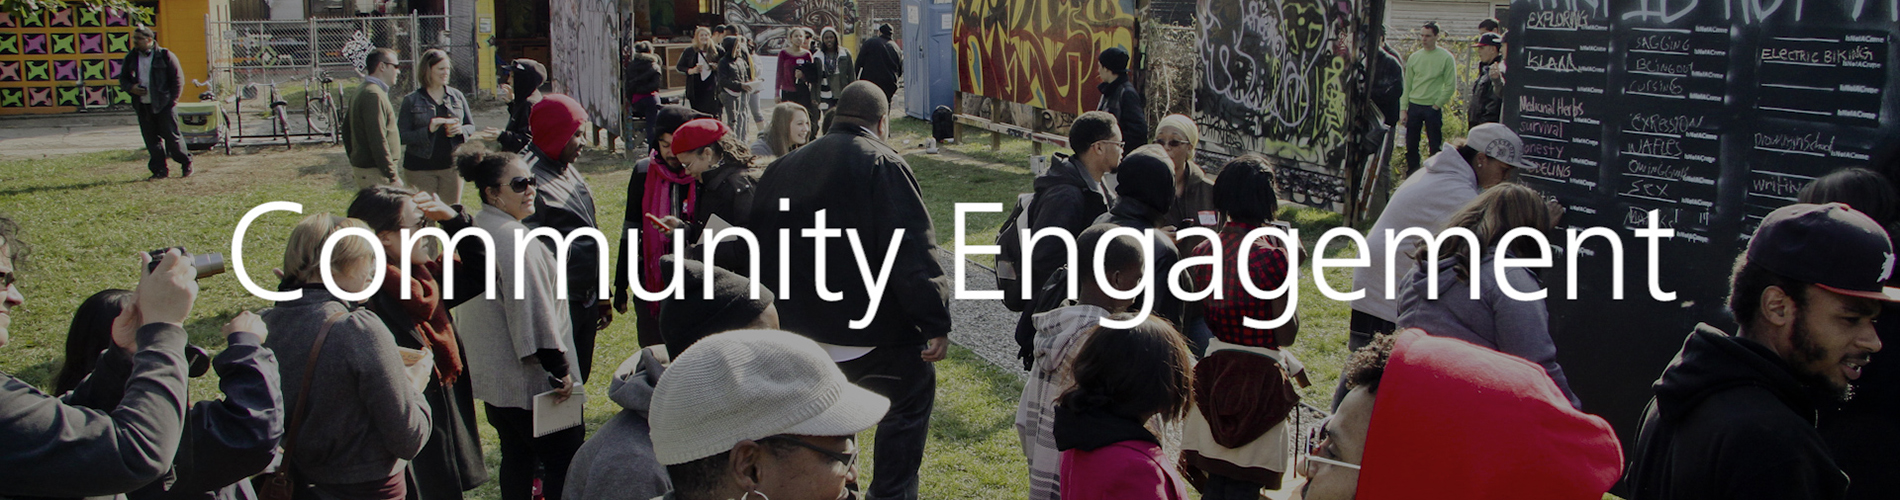 Community Engagement